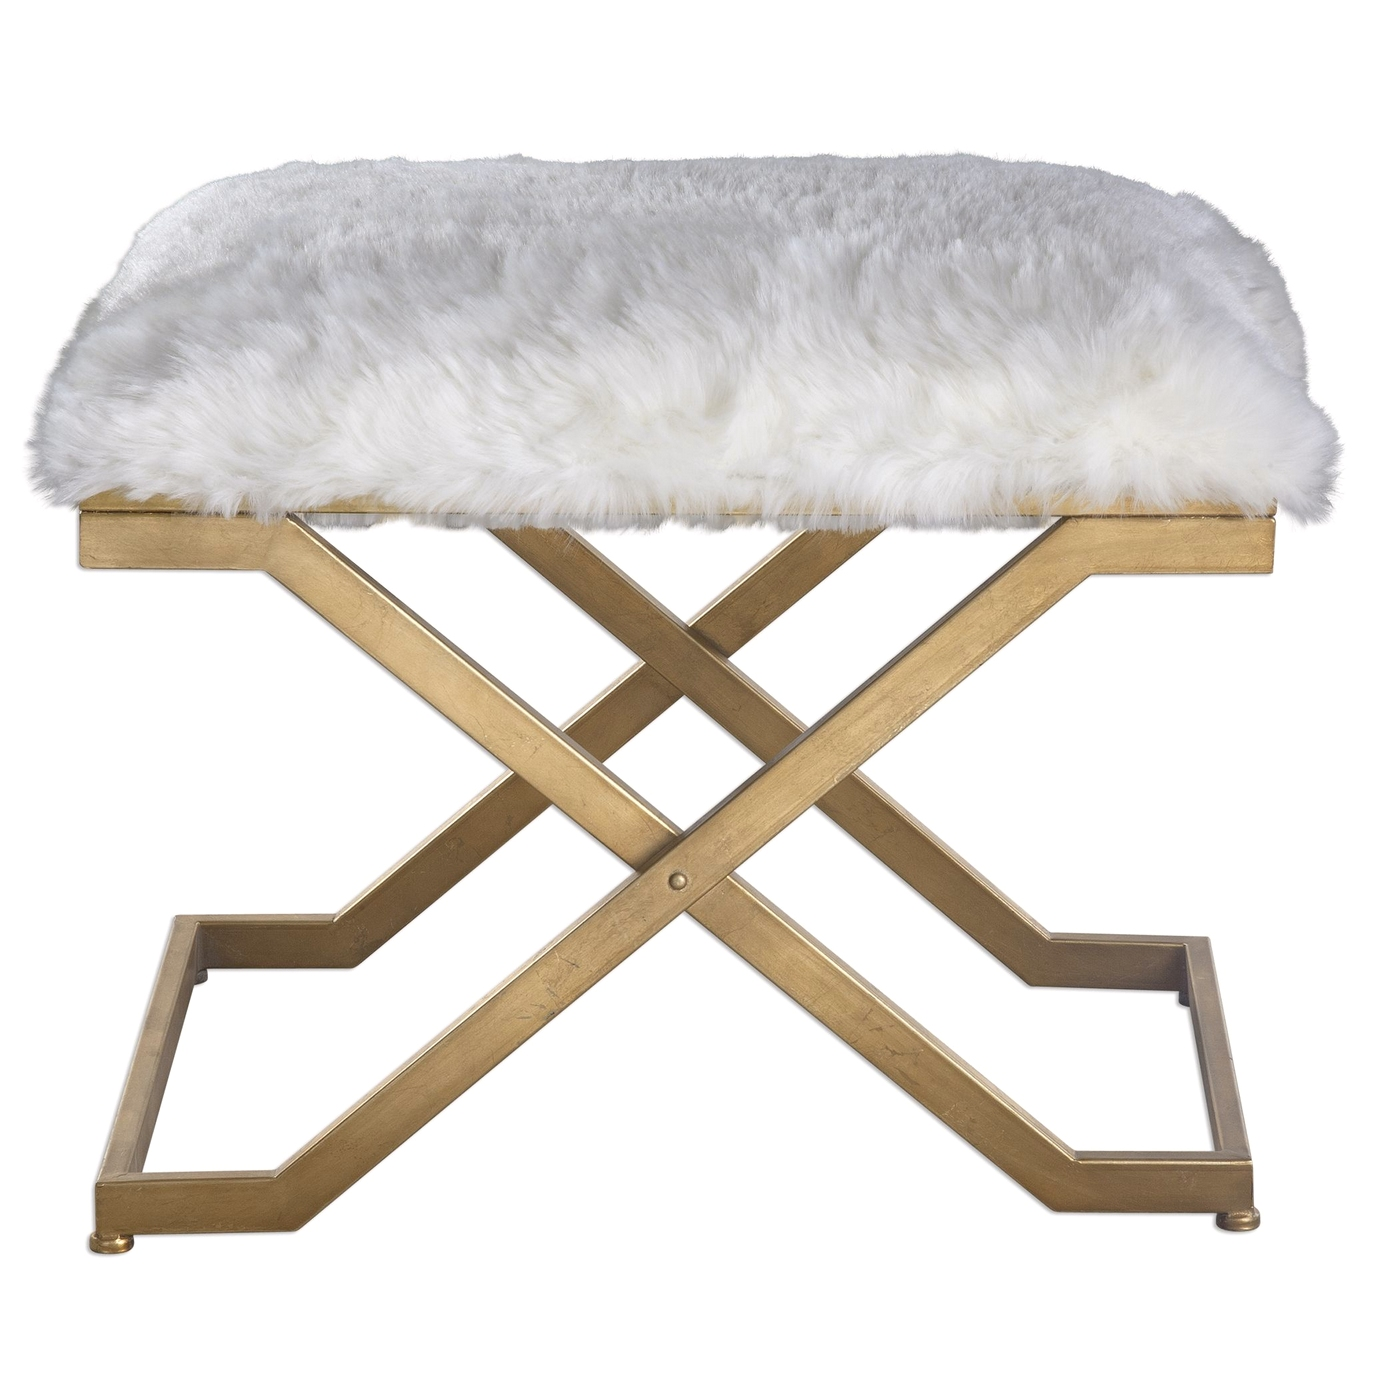 Awe Inspiring Details About Farran Soft White Faux Fur Small Bench With Hand Forged Gold Leaf Iron Legs Gamerscity Chair Design For Home Gamerscityorg